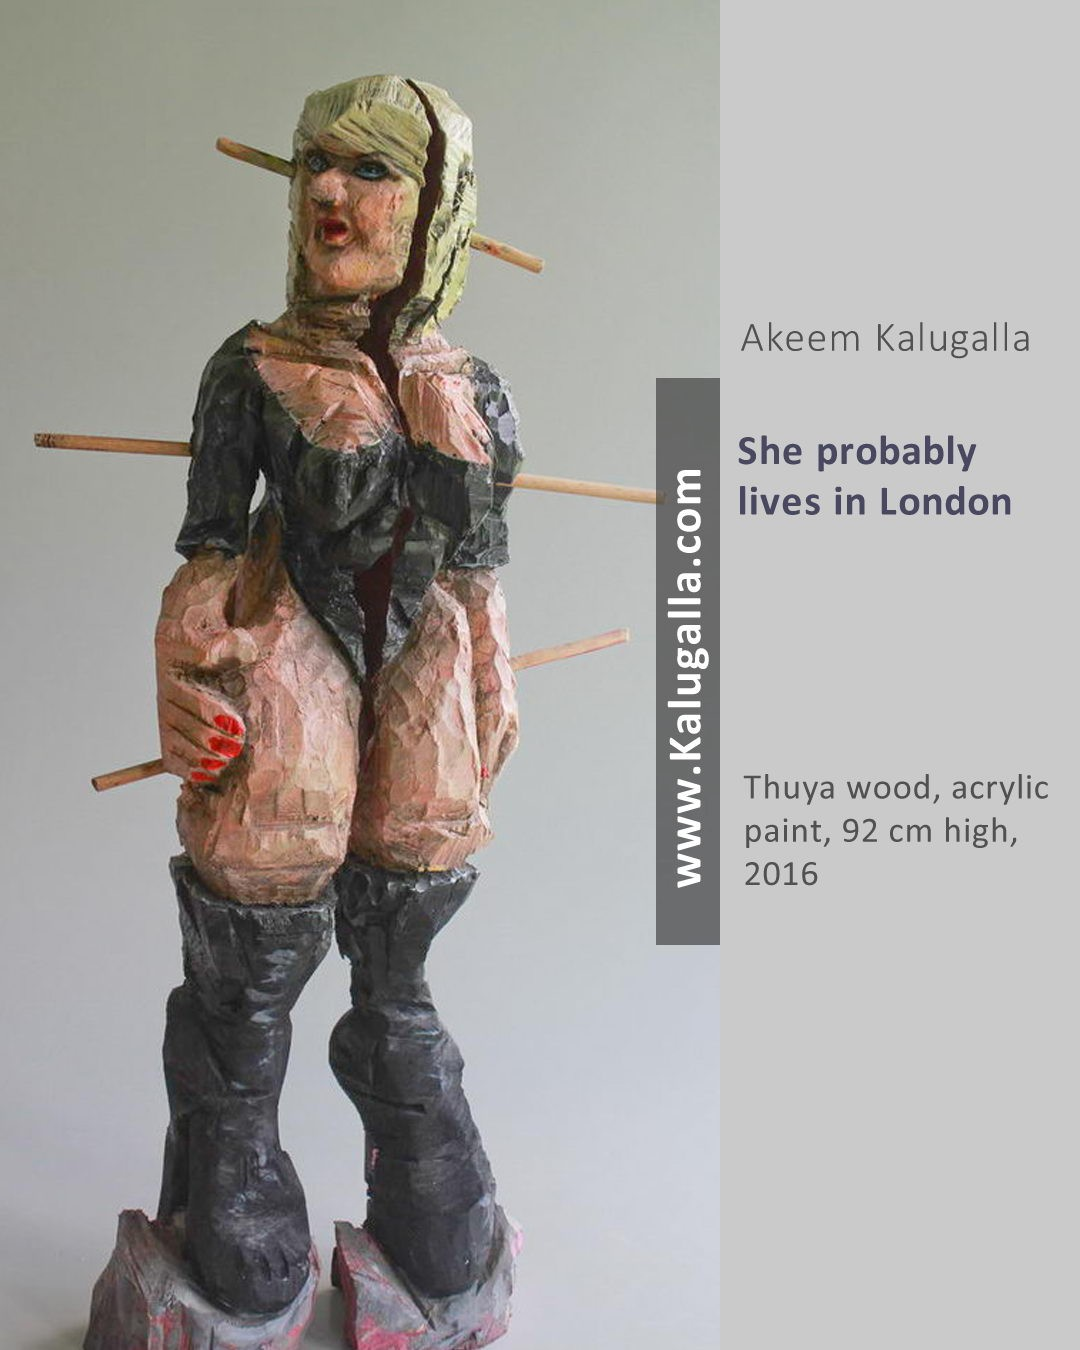 She probably lives in London by Akeem Kalugalla